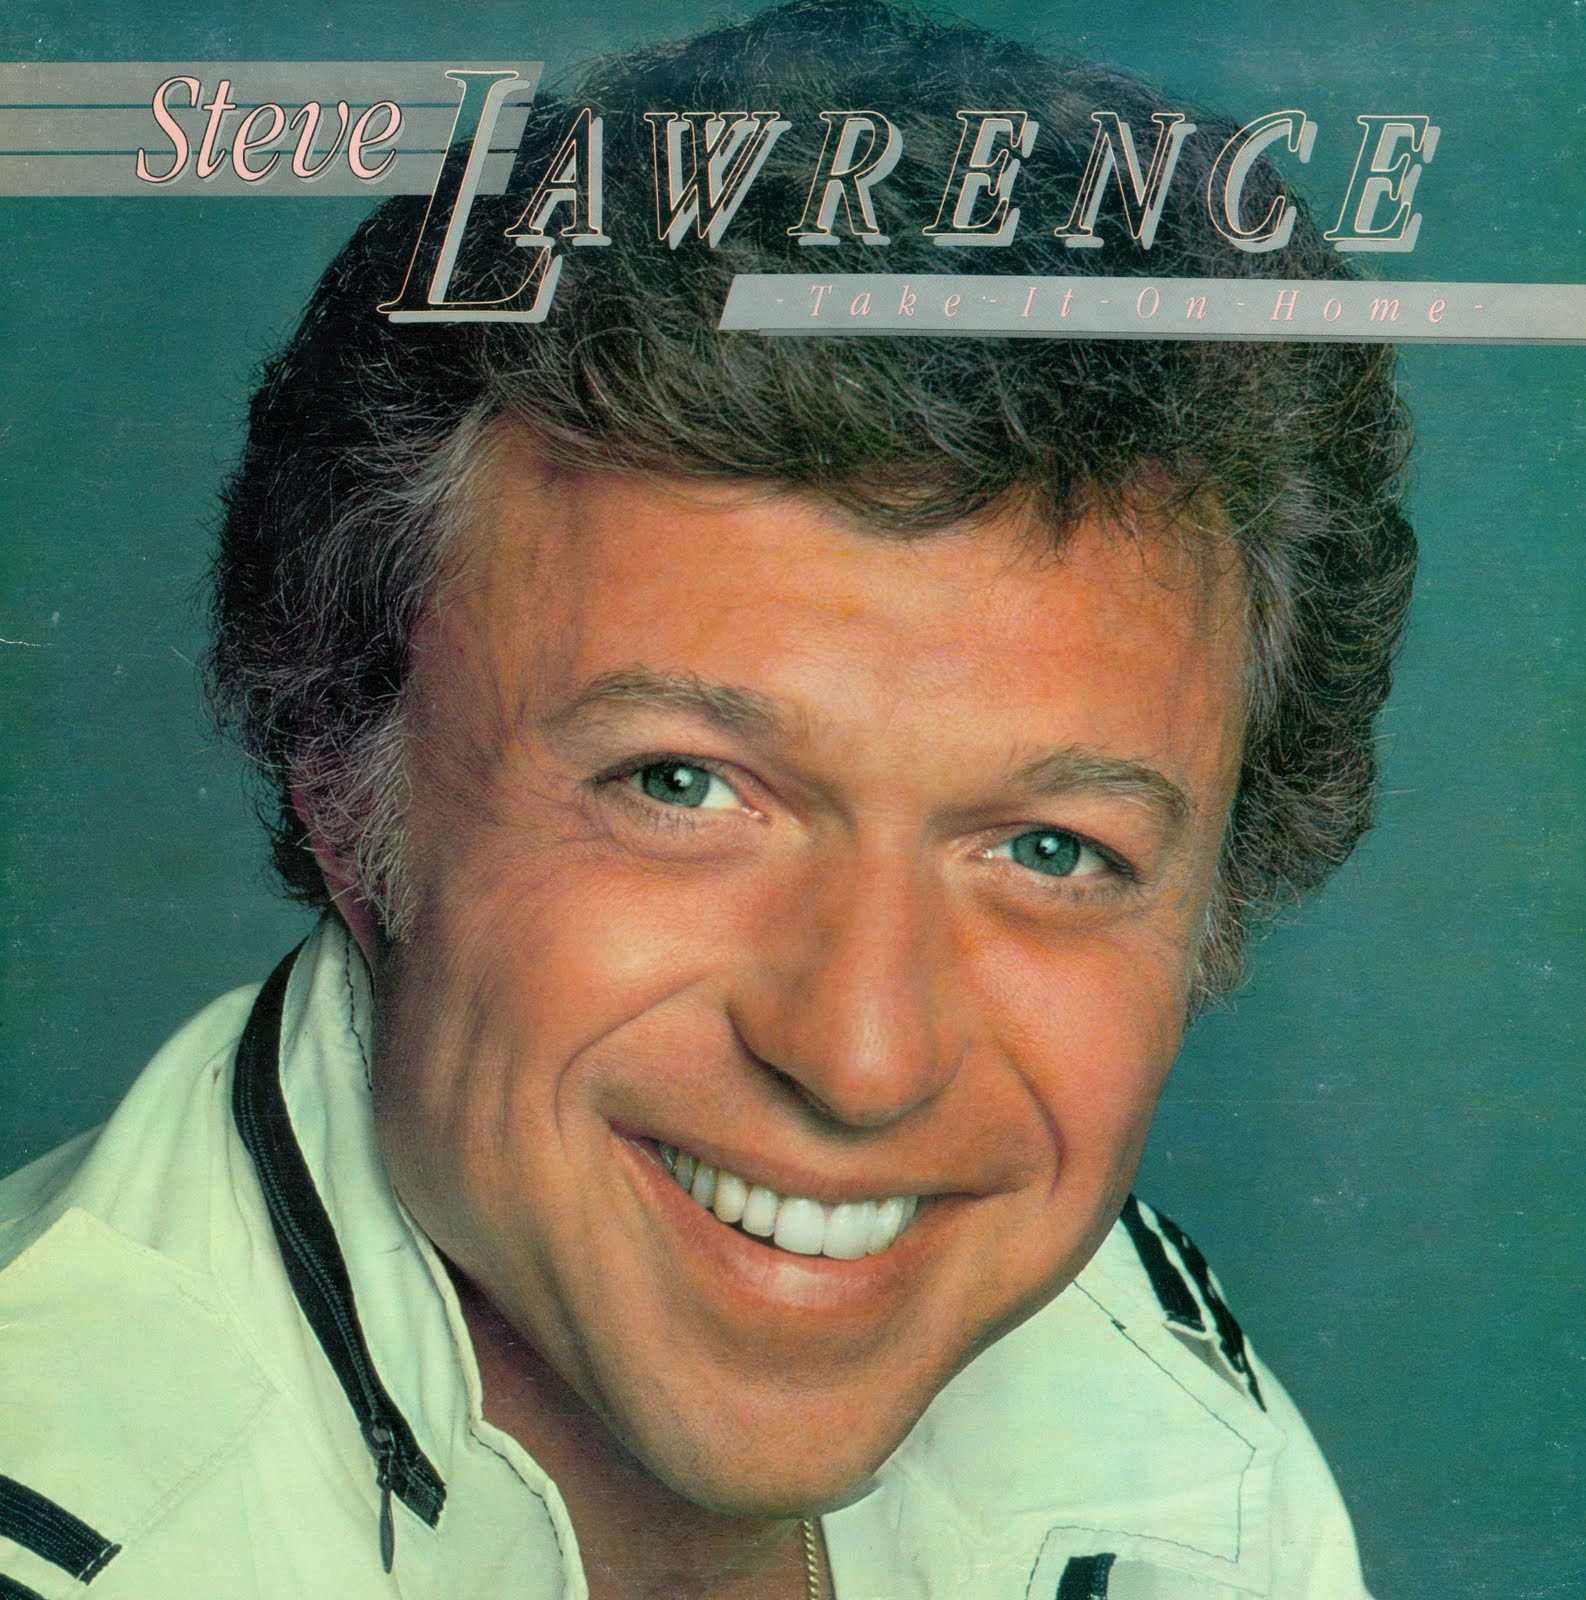 Steve lawrence take it on home applause records 1981